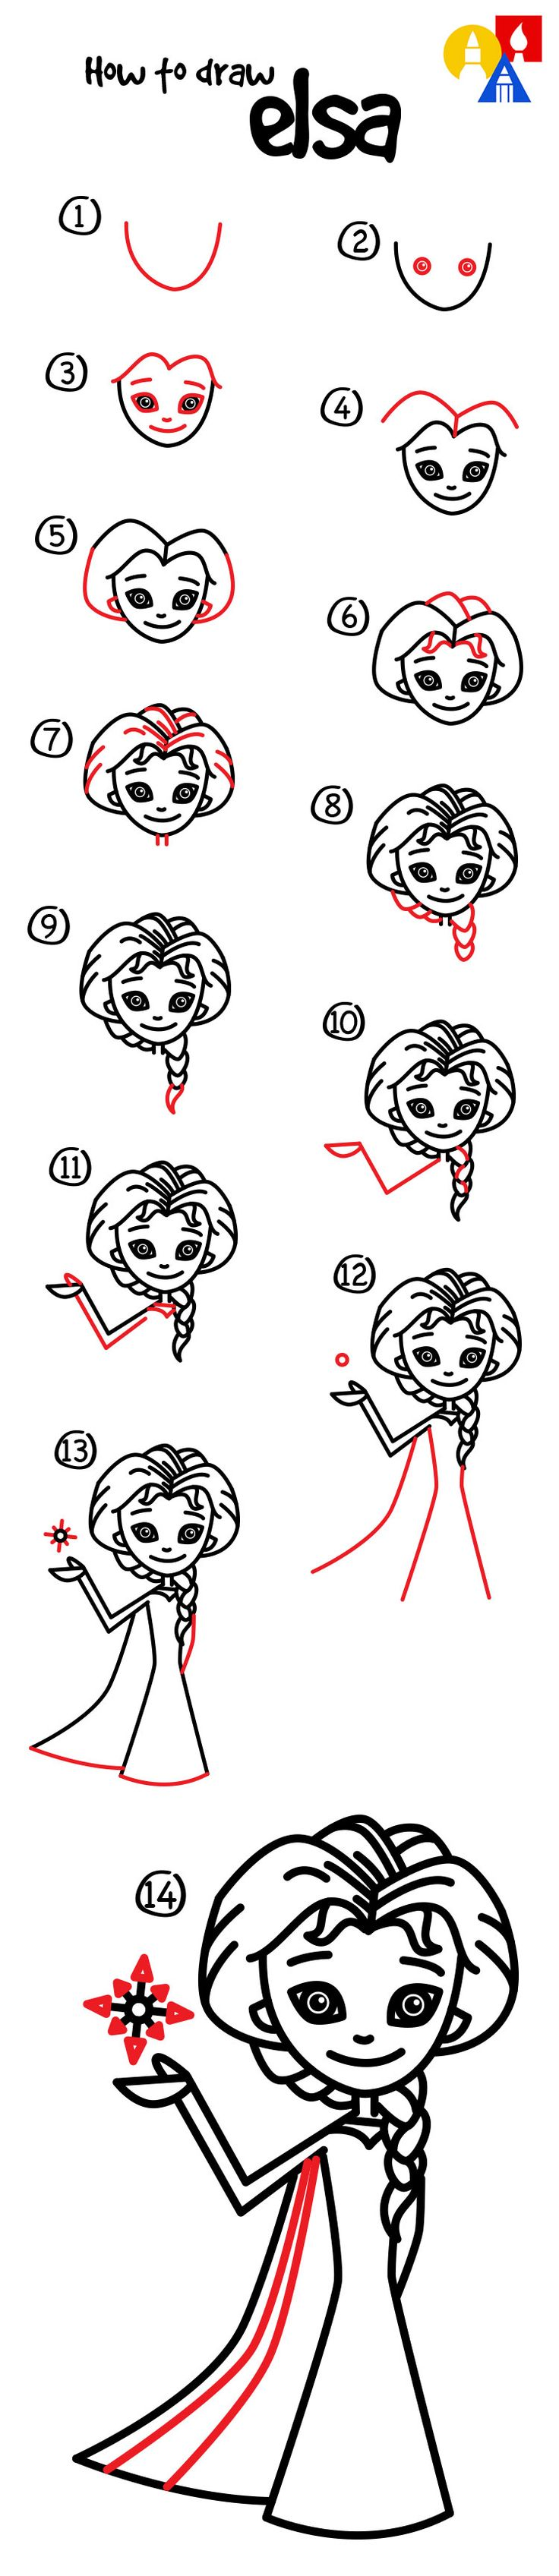 How To Draw Elsa (for Young Artists)  Art For Kids Hub